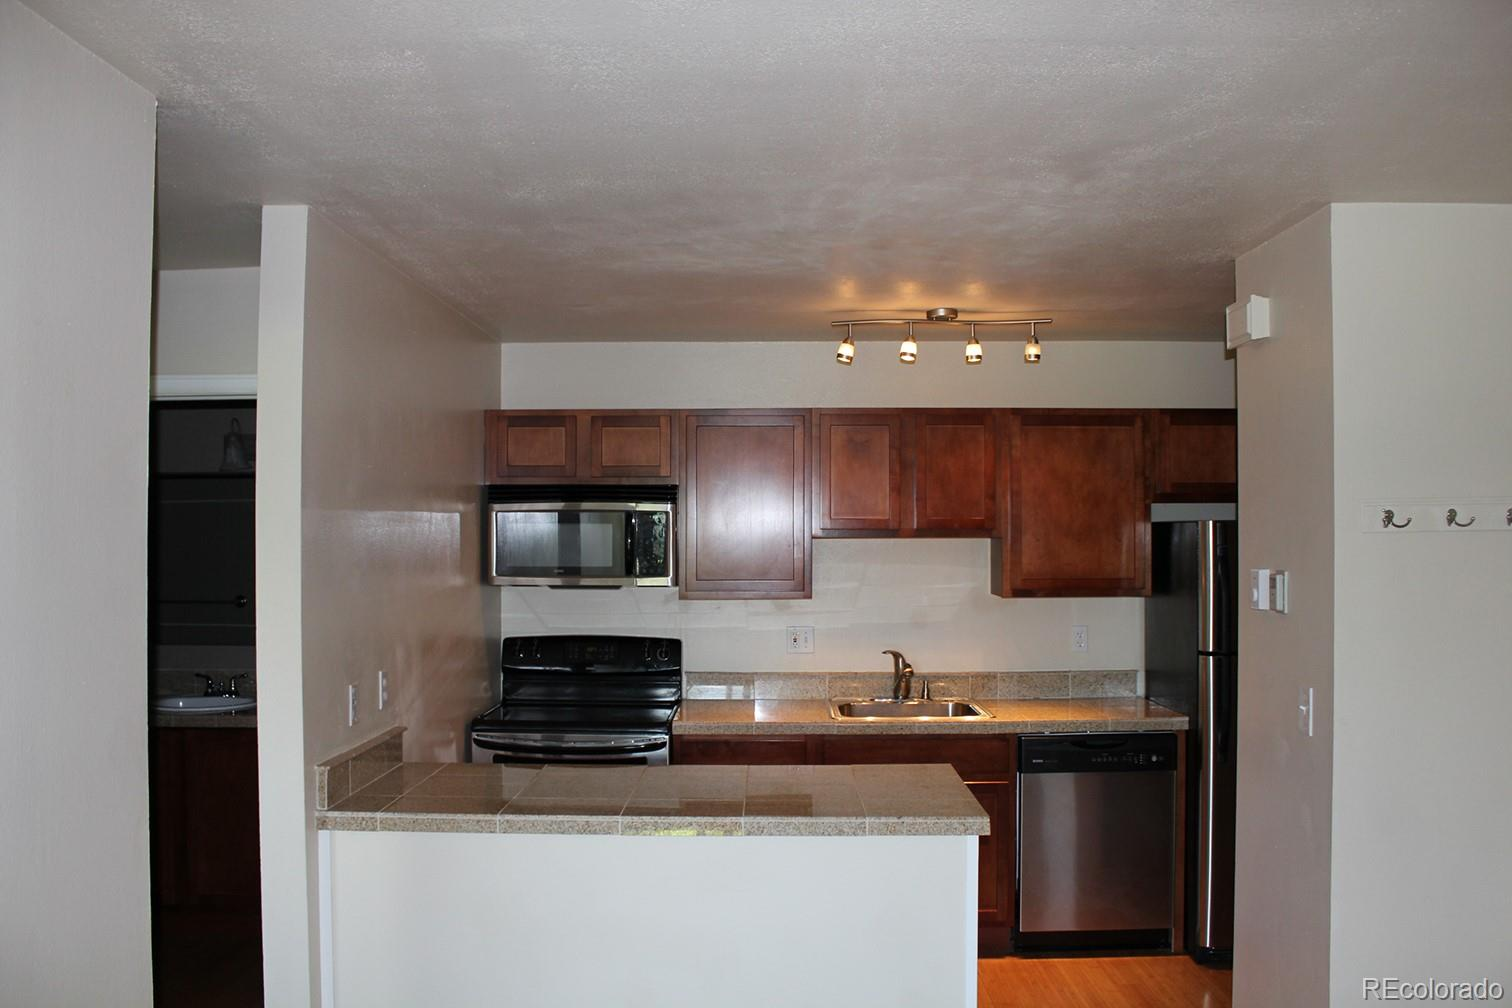 MLS# 8024267 - 1 - 1340 Athens Plaza #15, Steamboat Springs, CO 80487